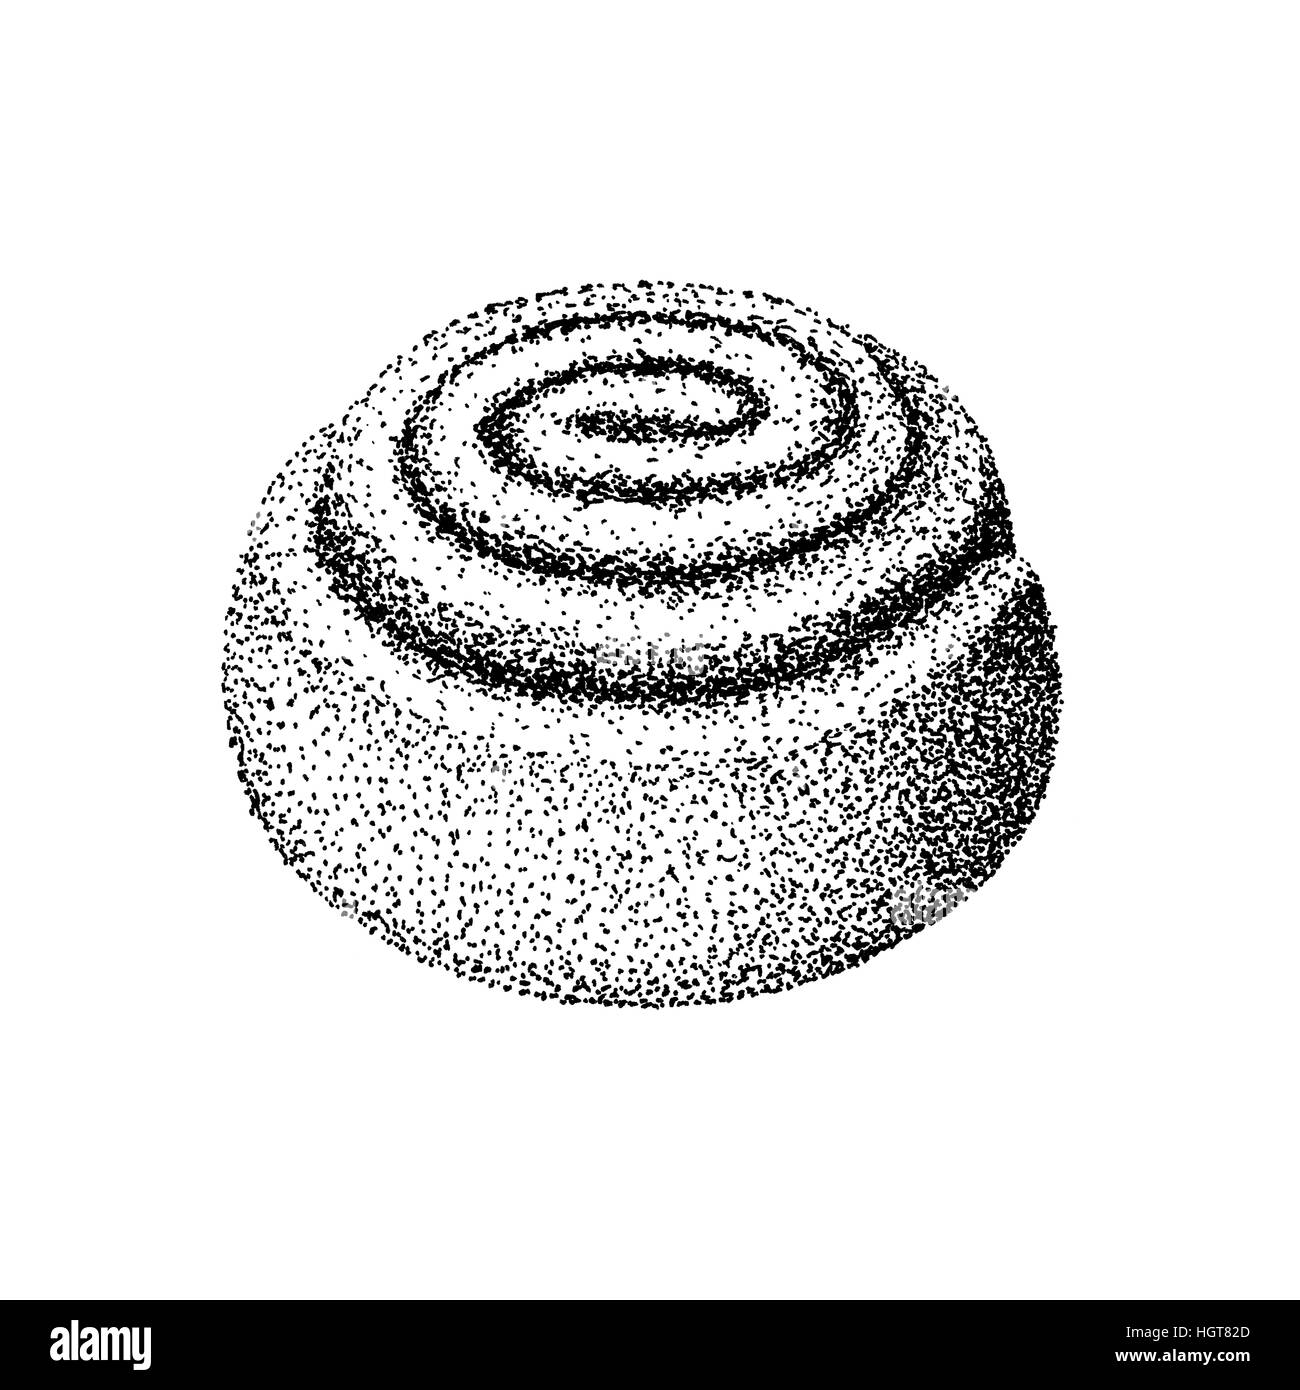 Cinnamon swirl illustration old lithography style hand drawn - Stock Image